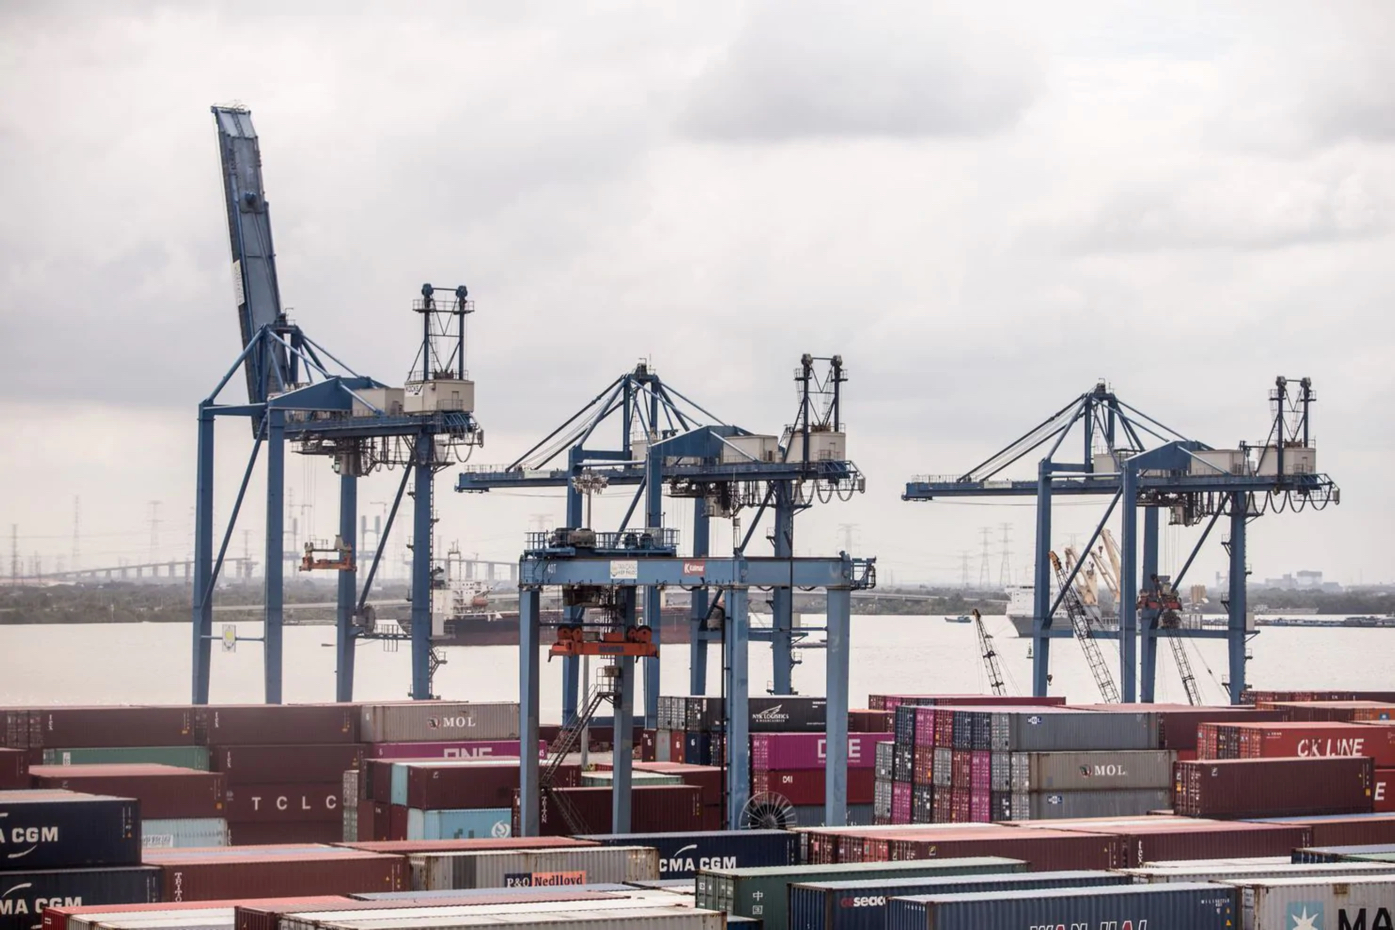 Gantry cranes stand next to containers at Tan Cang-Hiep Phuoc Port in Ho Chi Minh City, Vietnam, on June 27. Vietnam has benefited from a surge in exports and foreign investment as businesses look to scale back their China operations or relocate to avoid higher U.S. tariffs. (Yen Duong/Bloomberg News)